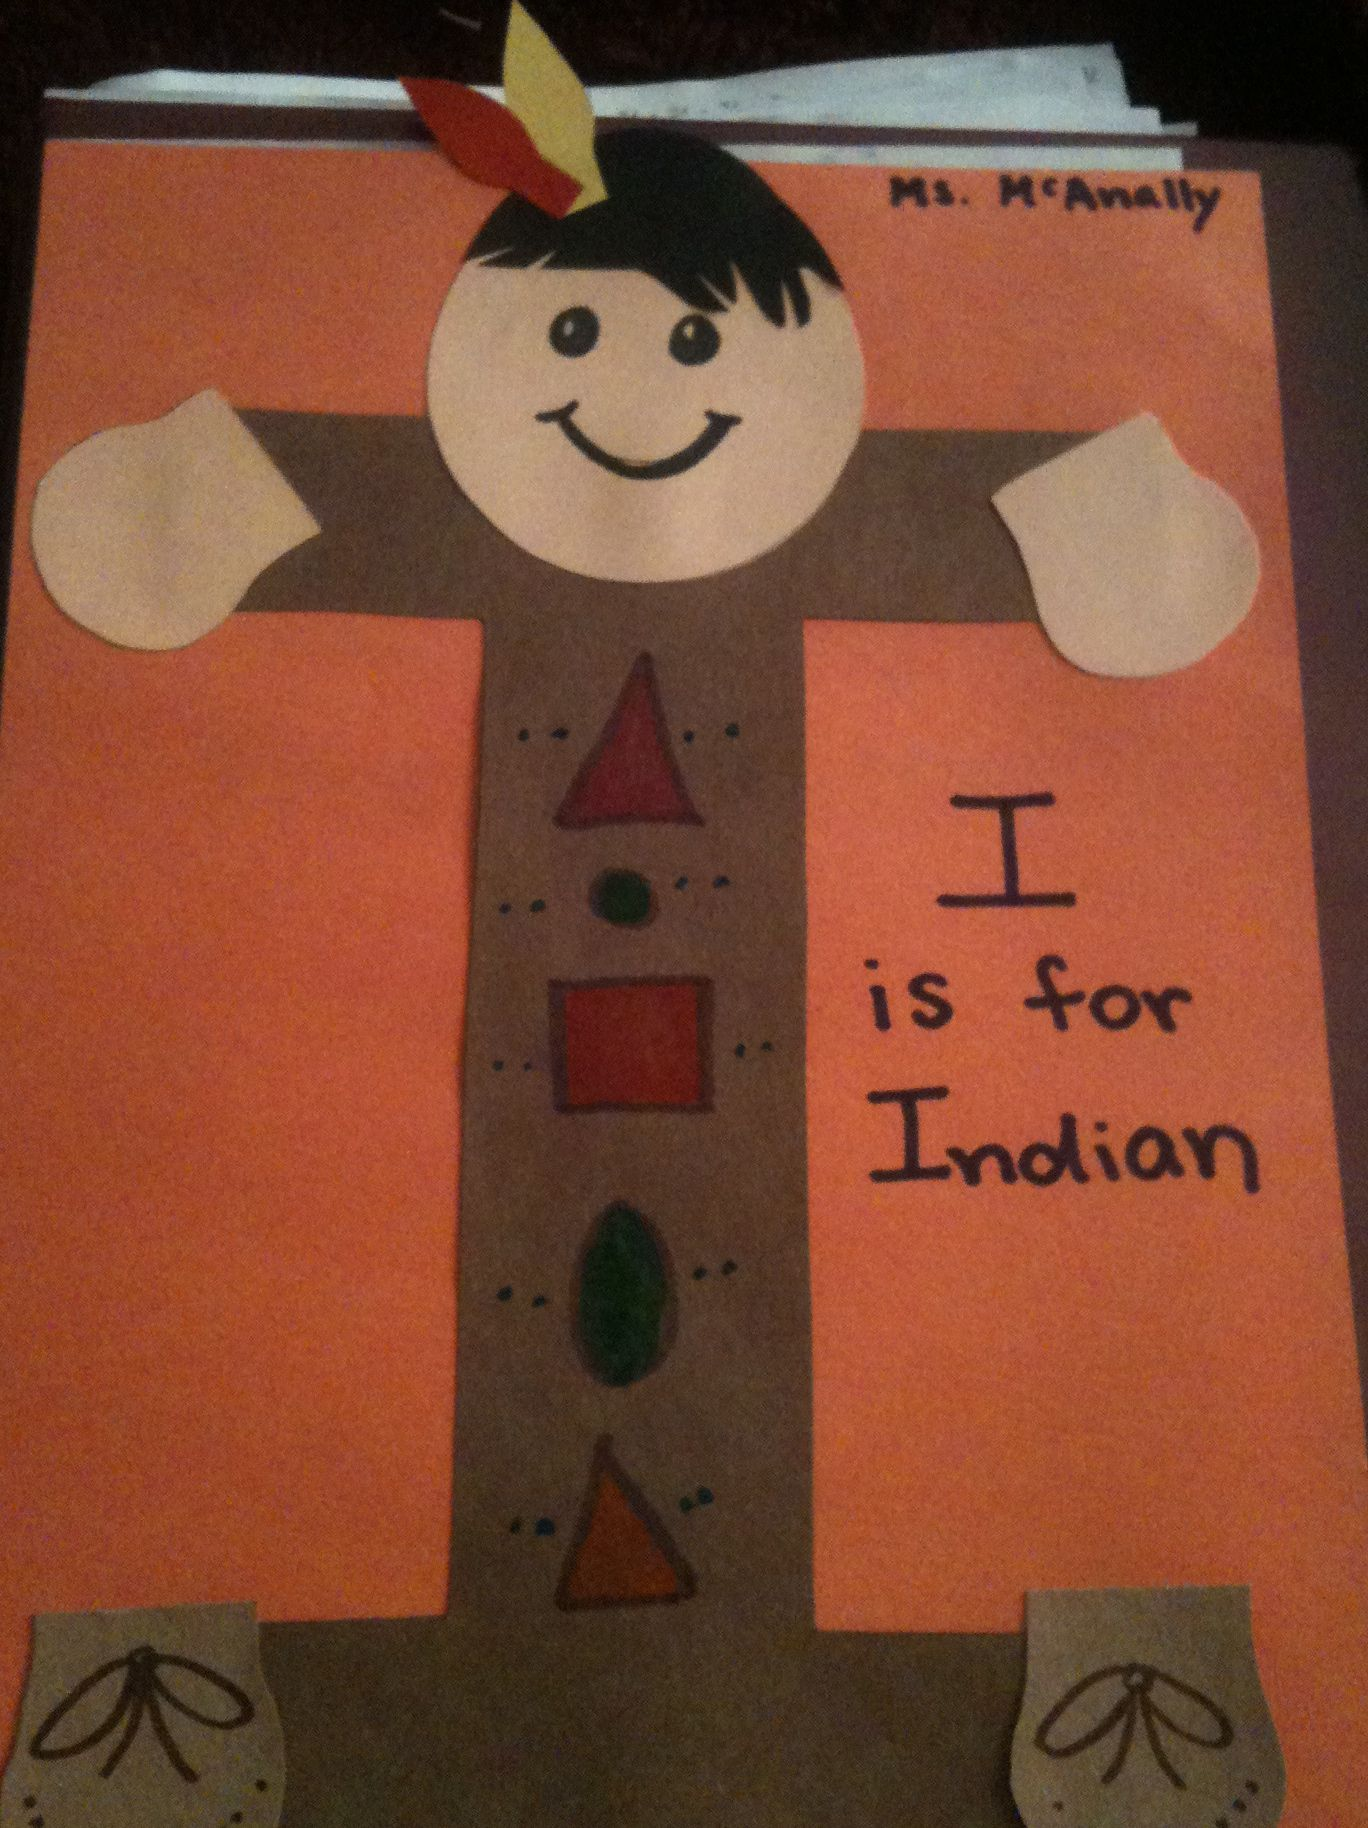 I Design Something Out Of Each Letter To Use As An Art Project I Is For Indian Great To Use